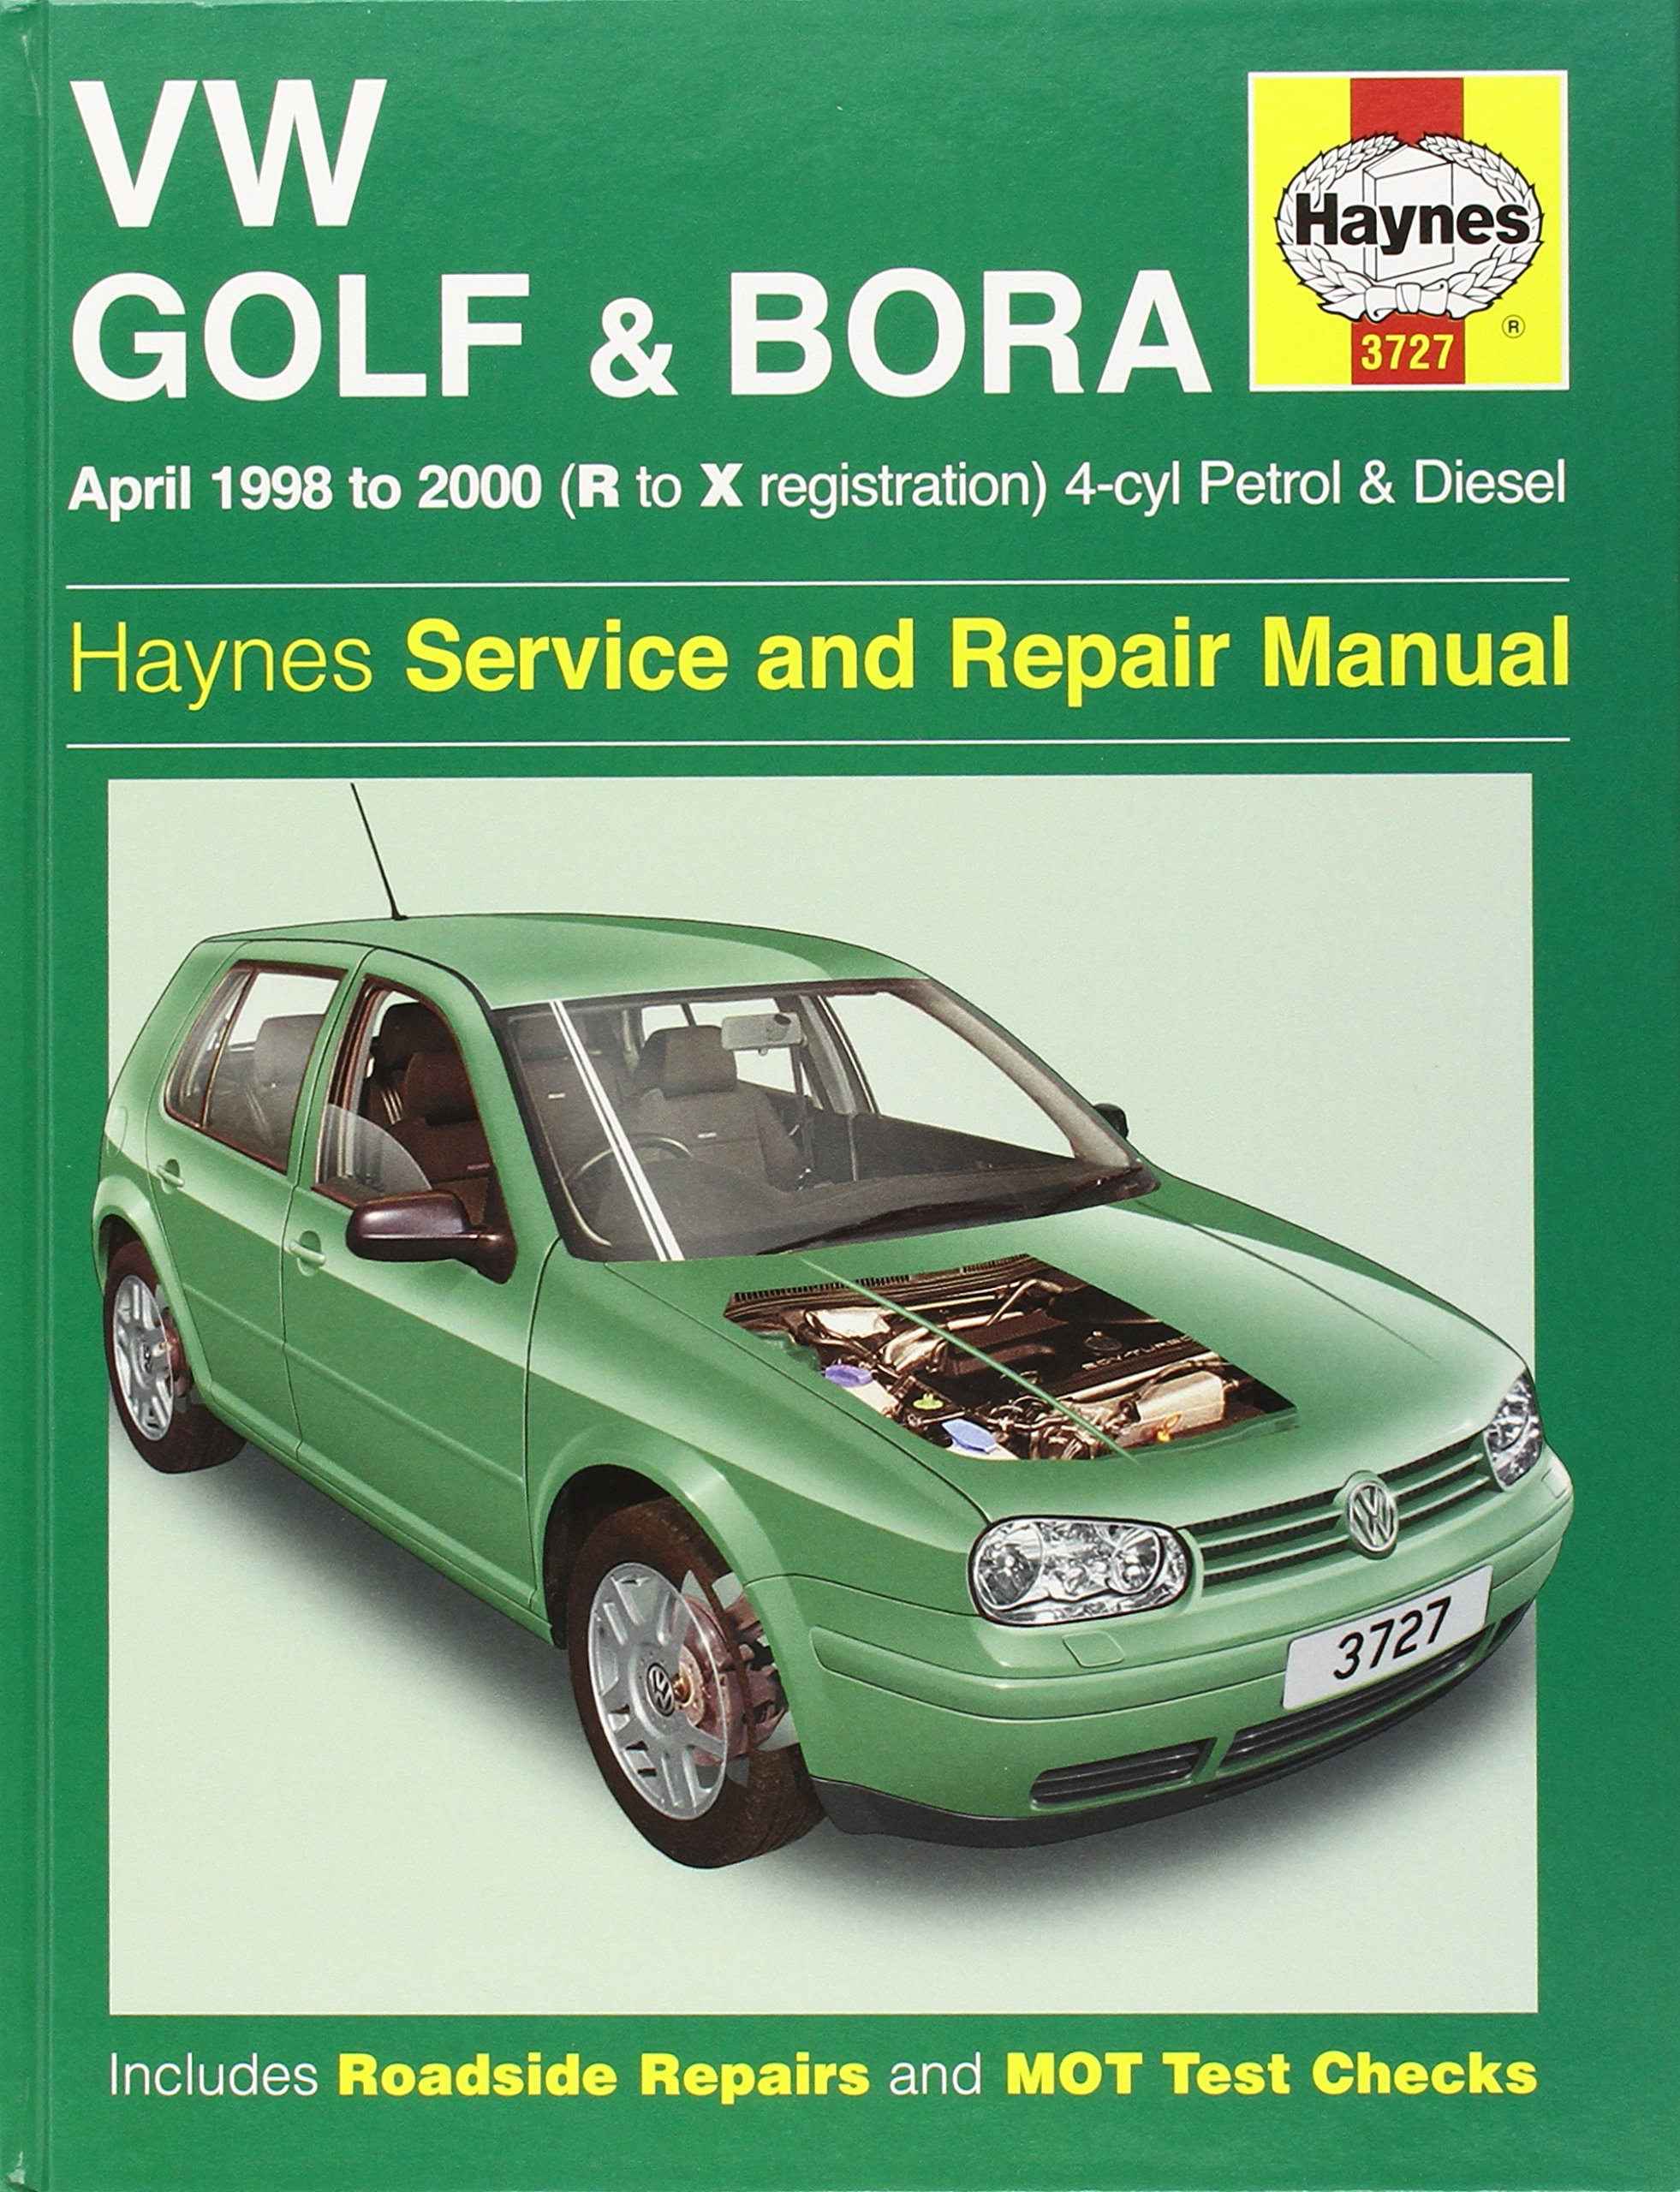 golf mark 4 manual user guide manual that easy to read u2022 rh sibere co Service Manuals Repair Manuals